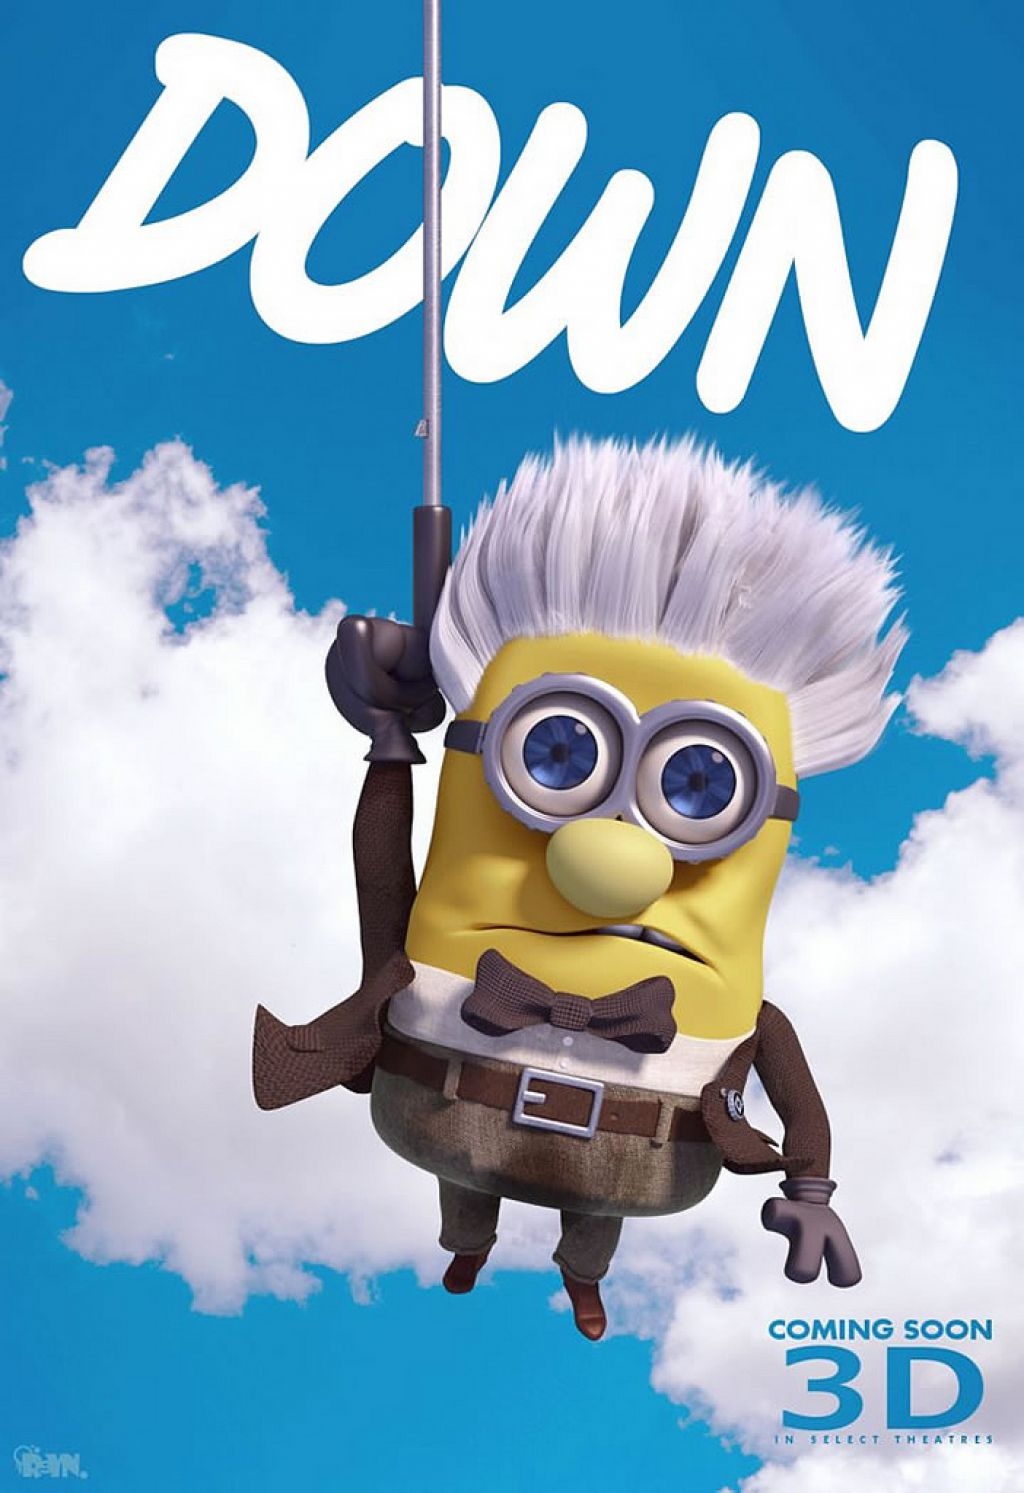 minion10 Movie Heroes as Minions